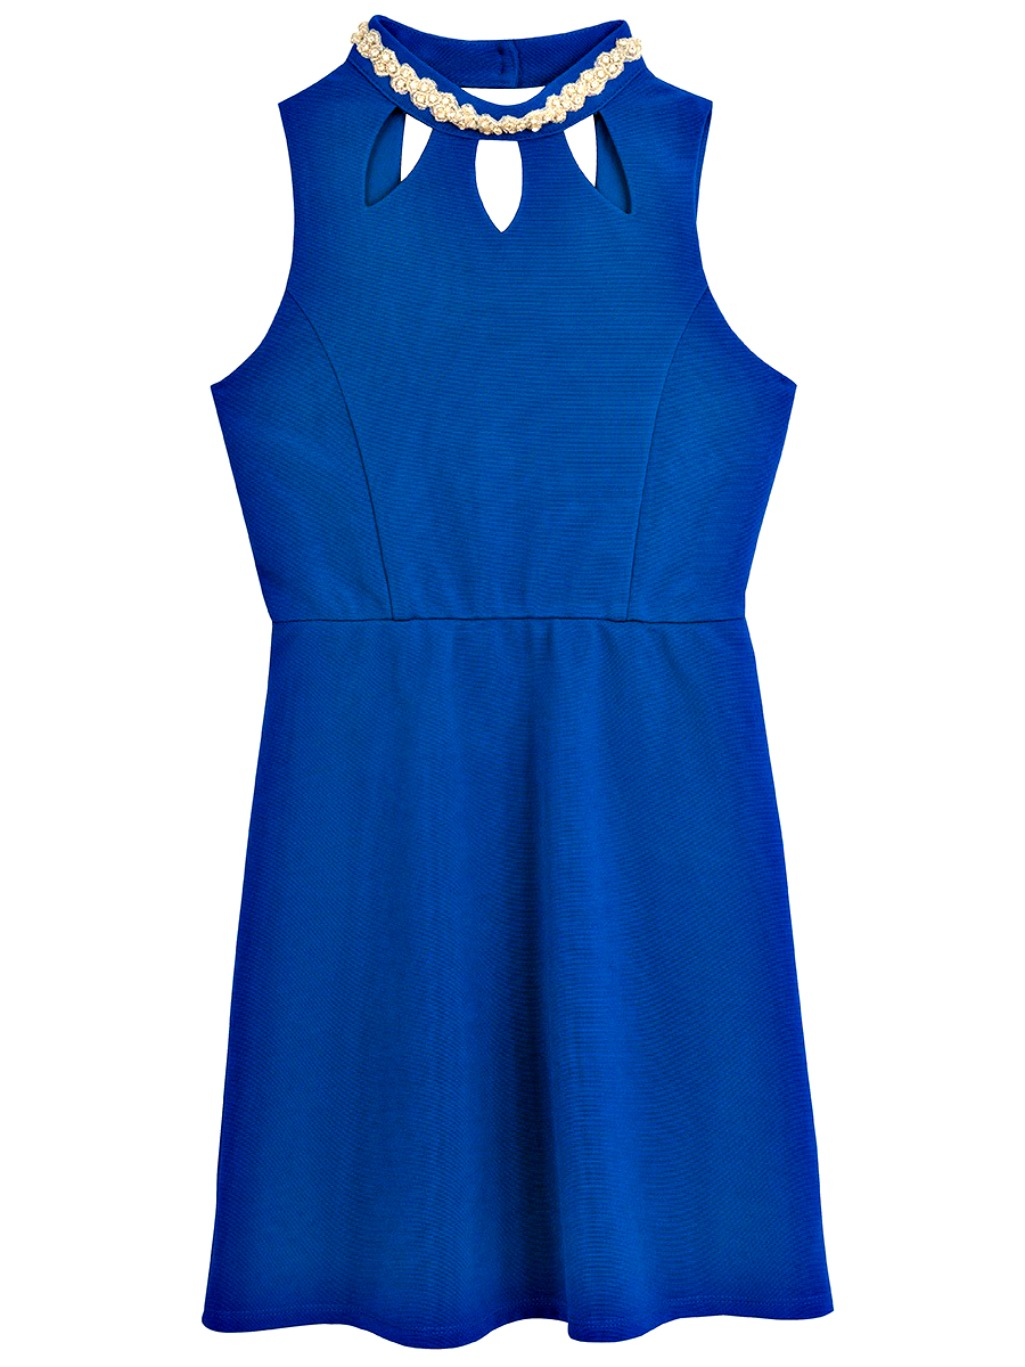 Rare Editions Big Girls Modern Royal Blue Party Dress SIZE 7